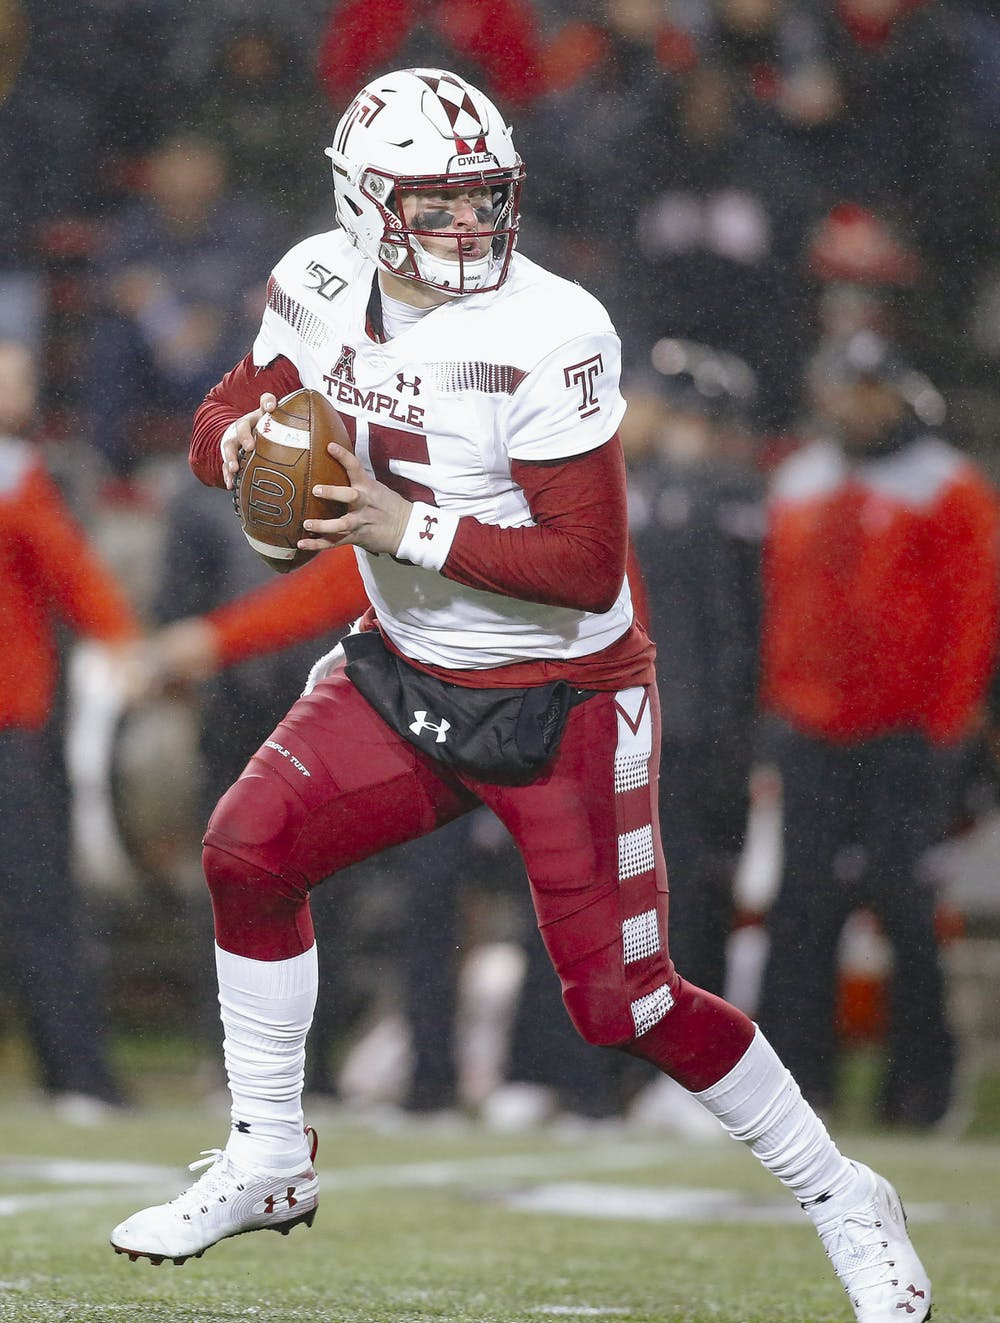 <p>Temple quarterback Anthony Russo drops back for a pass against Cincinnati in 2019. Russo announced on Dec. 16 that he would be transferring to Michigan State after playing in 31 games for the Owls. Photo courtesy of Zamani Feelings/Temple Athletics.</p>